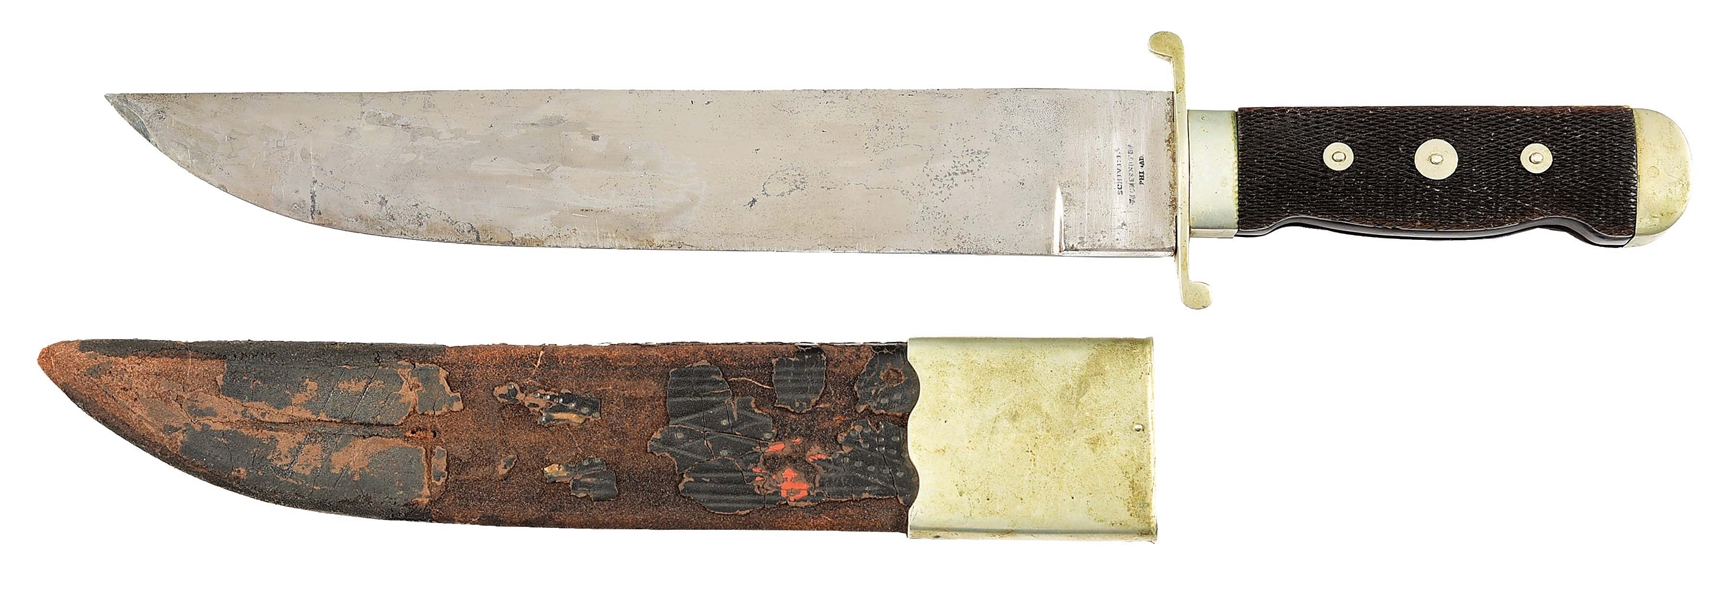 "RARE AND NEWLY DISCOVERED ""IMPROVED PATTERN"" BOWIE KNIFE BY SCHIVELY, PHILADELPHIA."